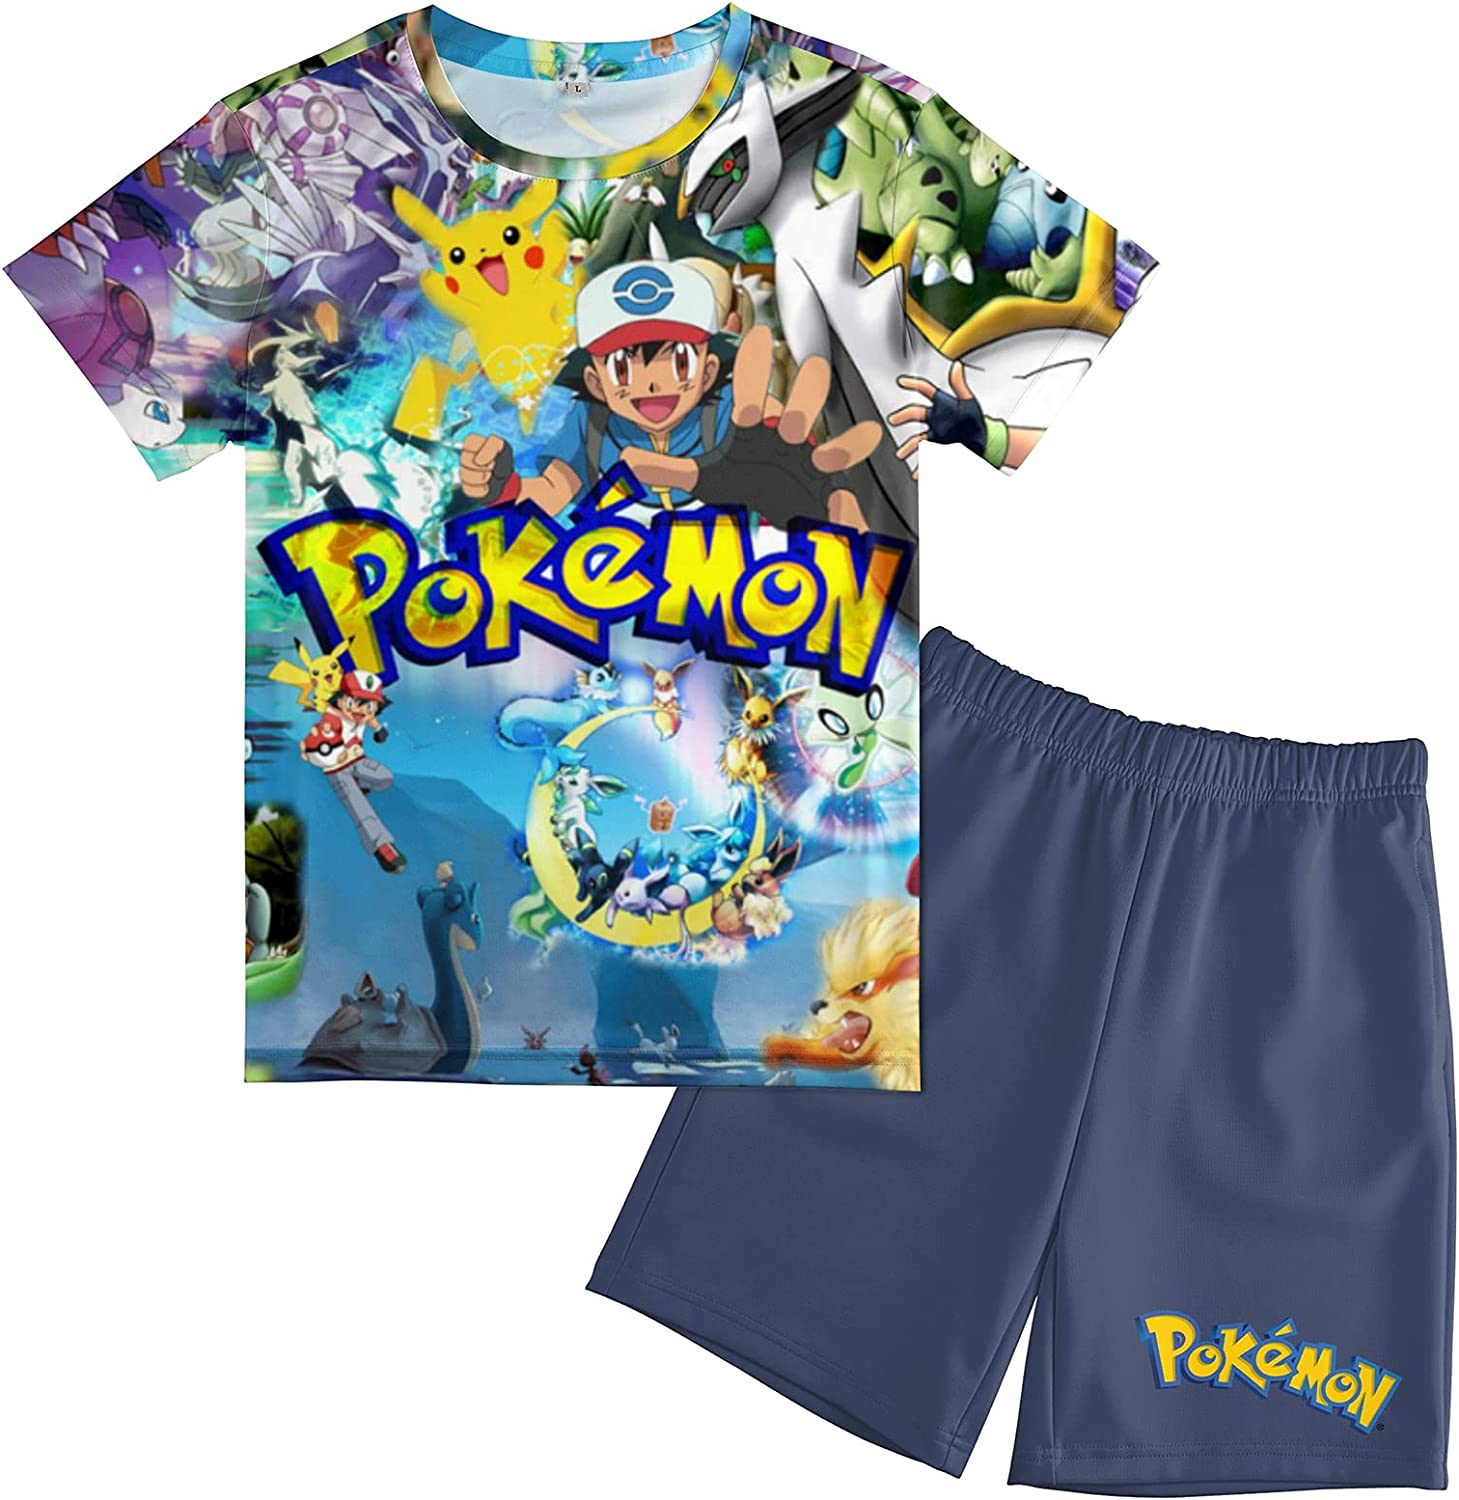 UWHIGKV Boys Casual T-Shirt and Shorts Set Kids Summer Outfits Tee and Shorts